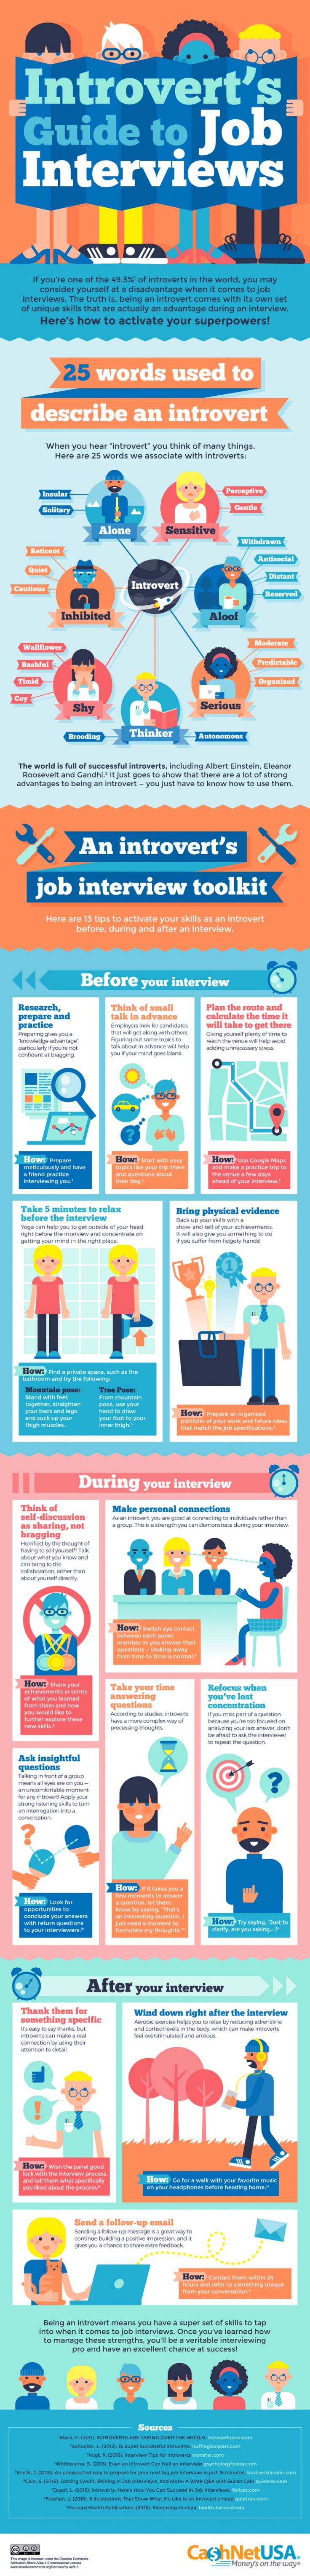 Being an introvert doesn'tmean potential employers are less likely to see and recognize your unique strengths if you take the right approach to interviewing.Use these tips to boost your confidence through preparation and an introvert-friendly mindset to let those abilities shine.Via CashNetUSA.Like infographics? So do we.